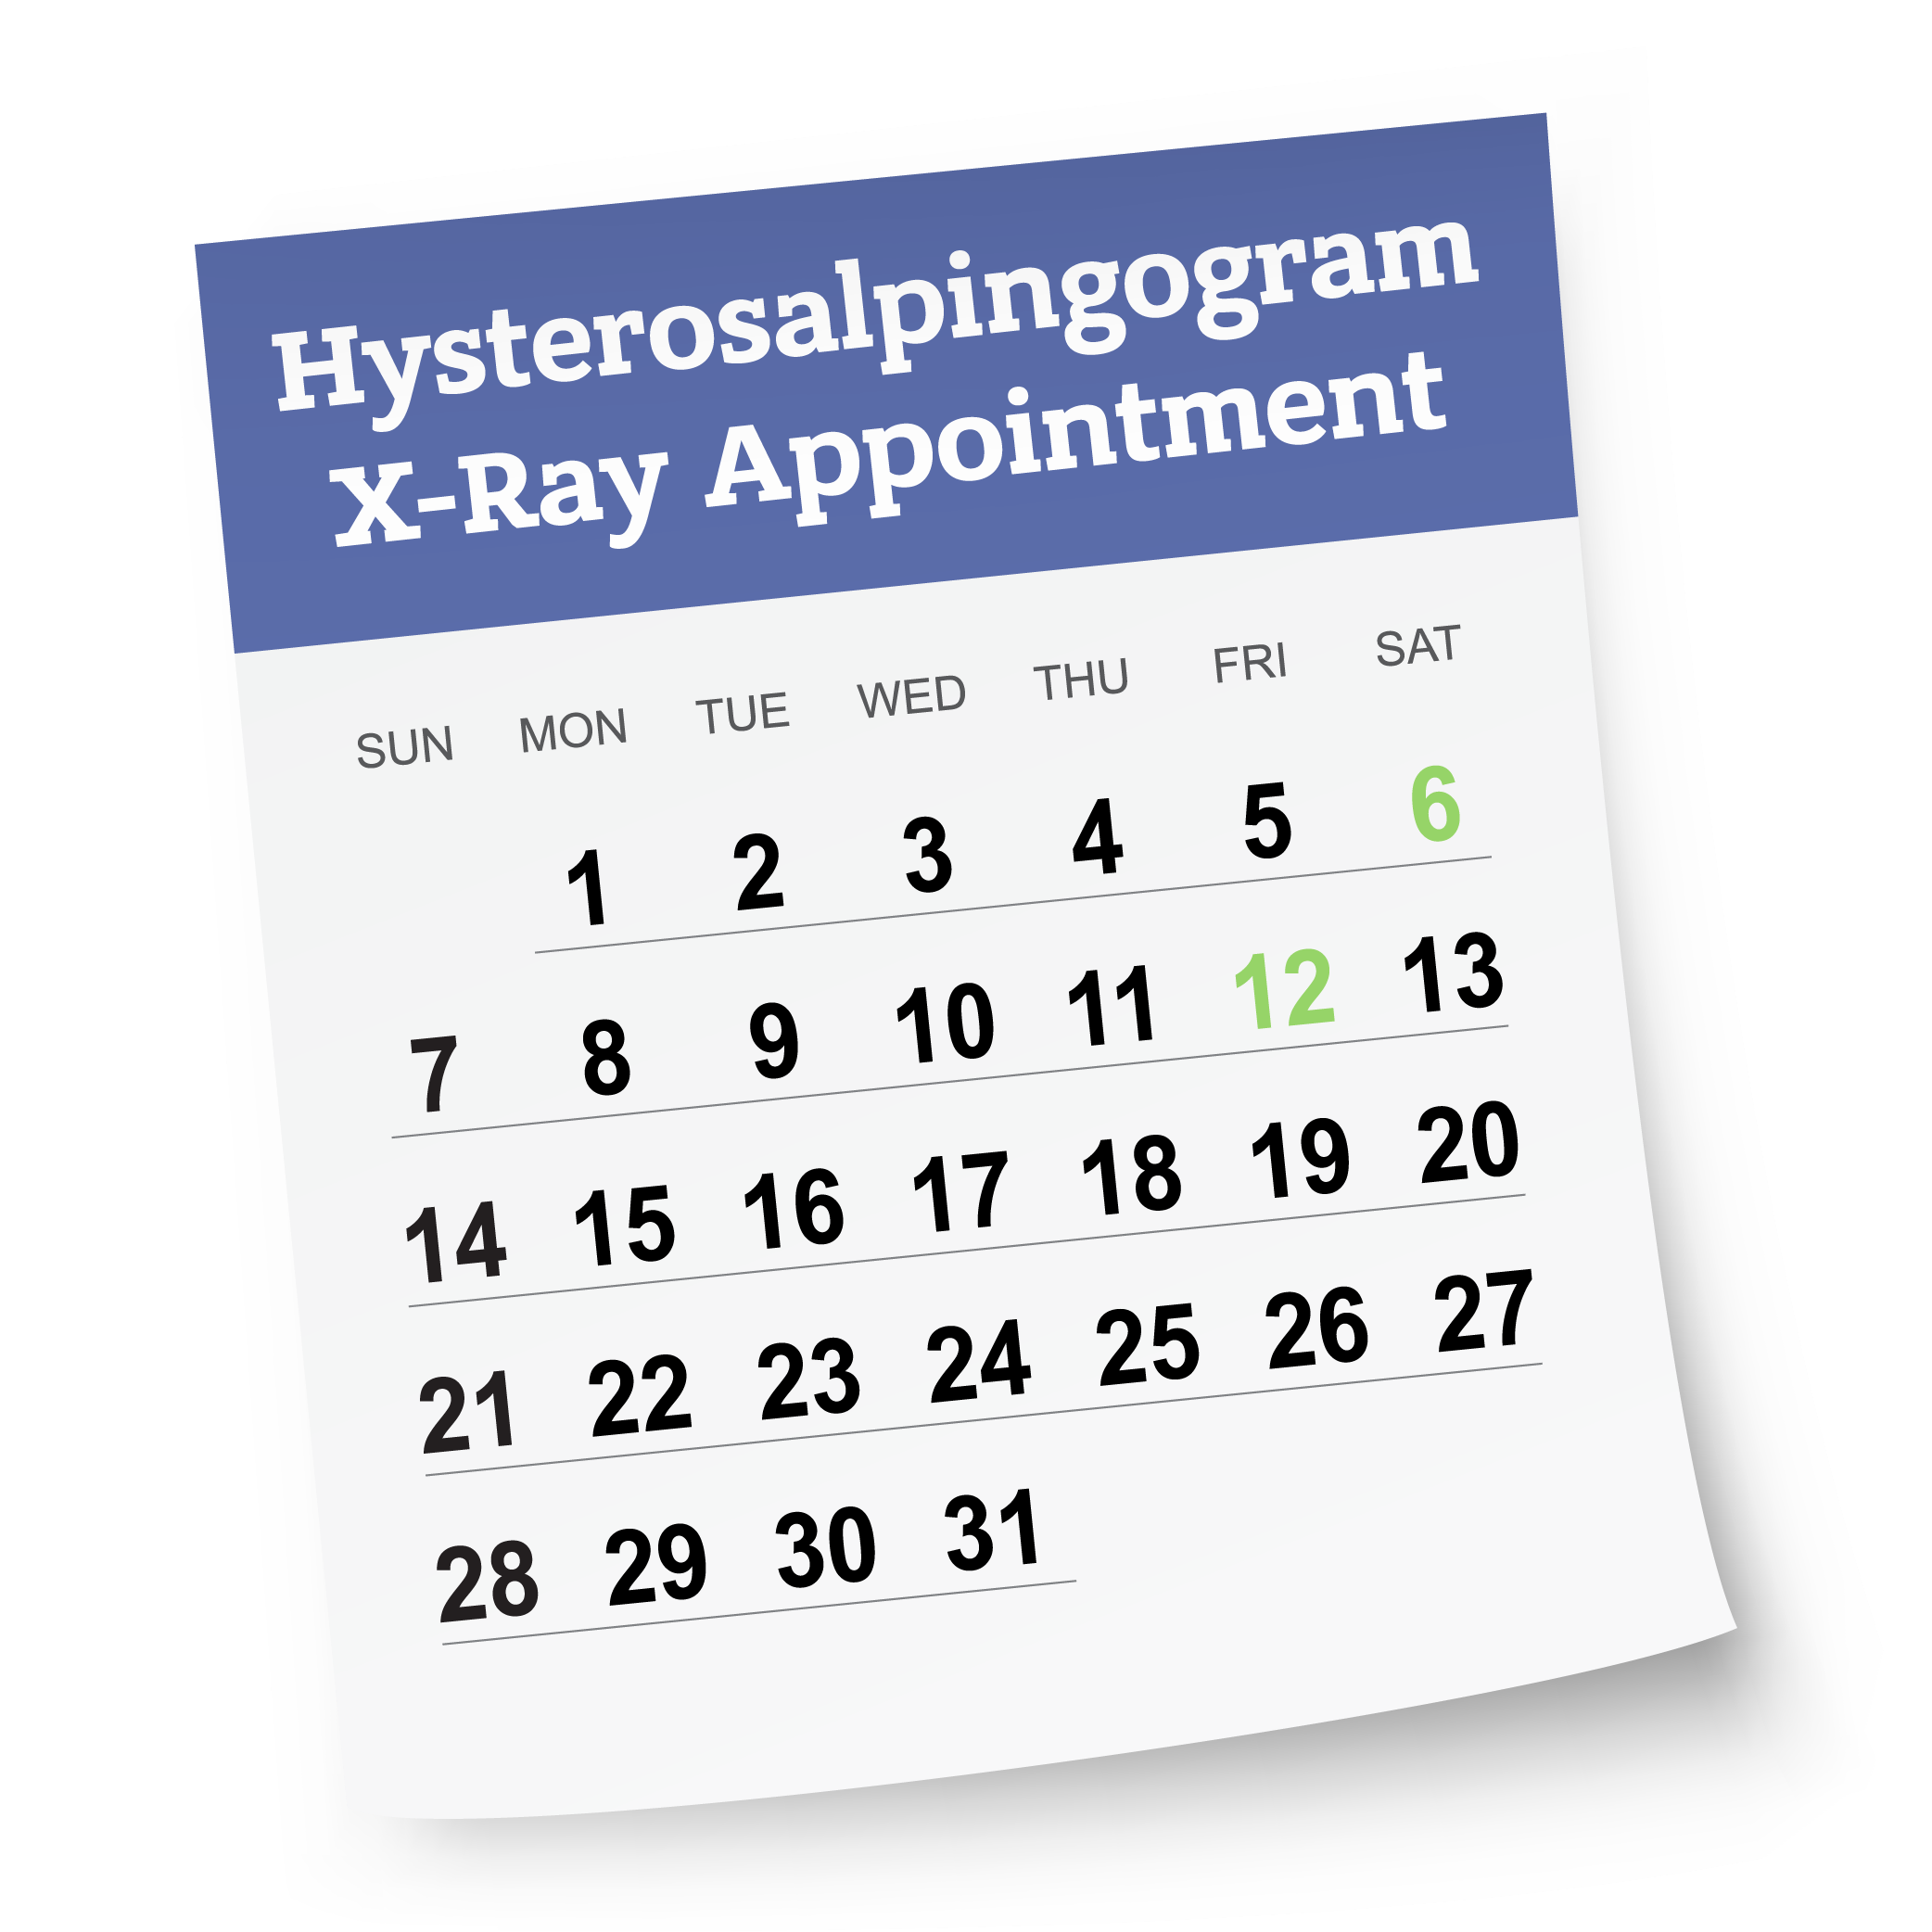 hystero xray calendar-testing page